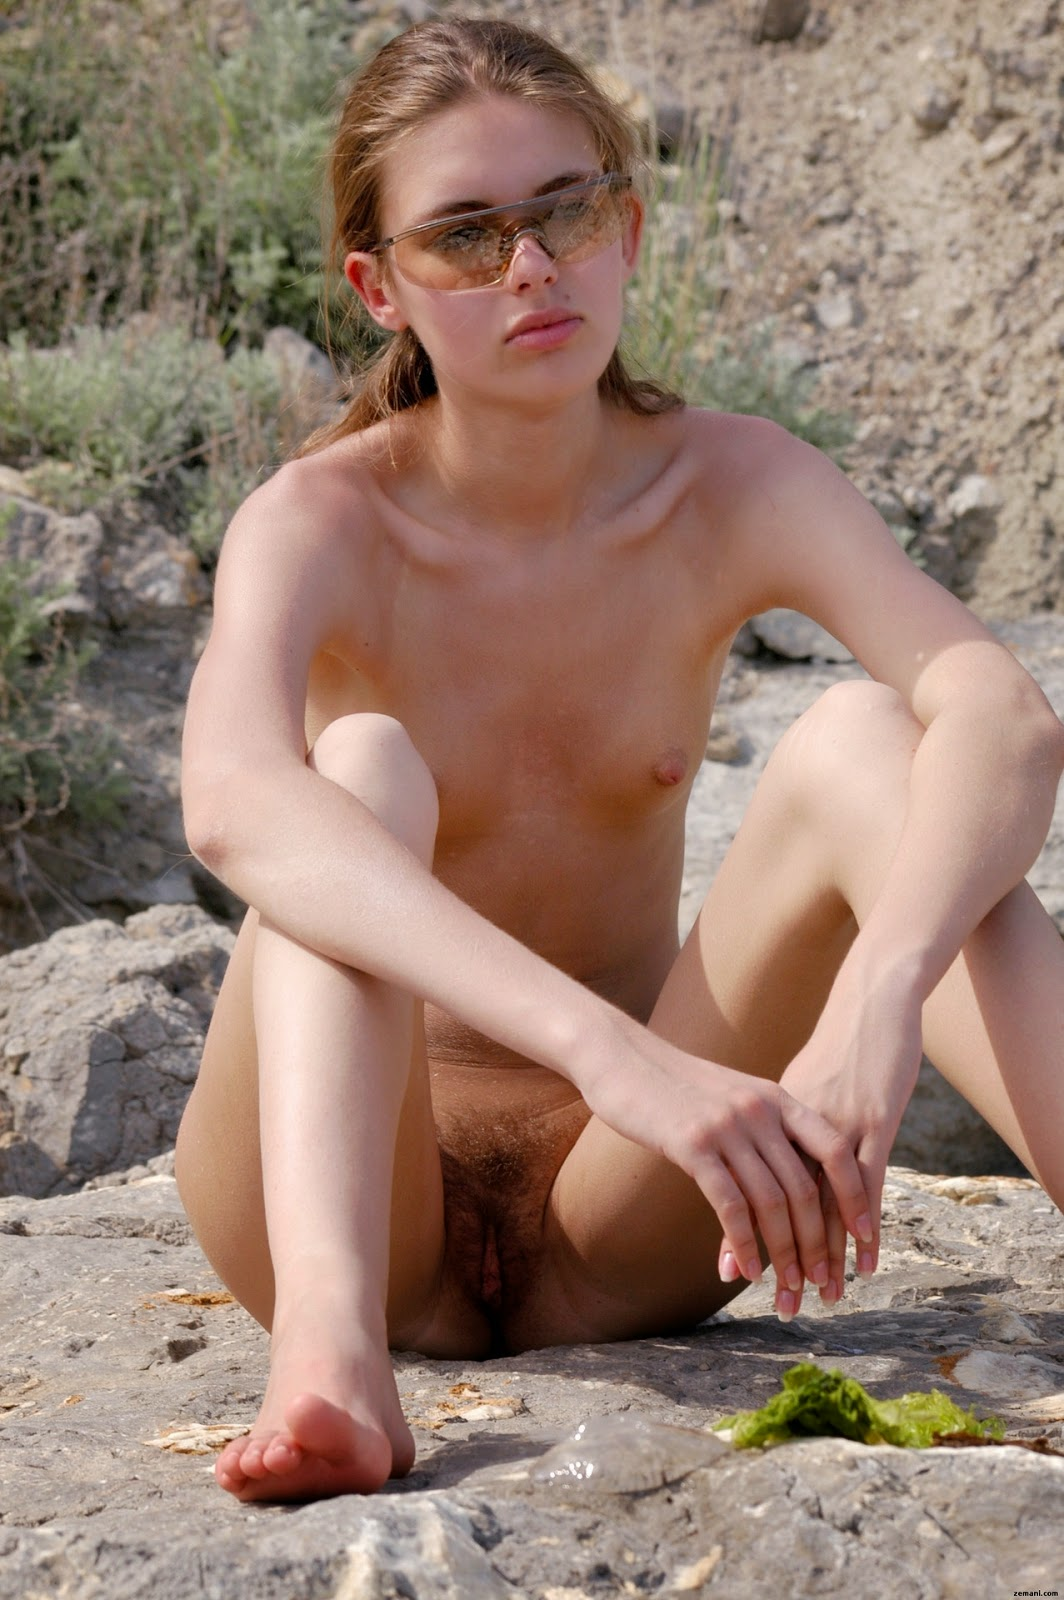 family nudist bbs photo galleries